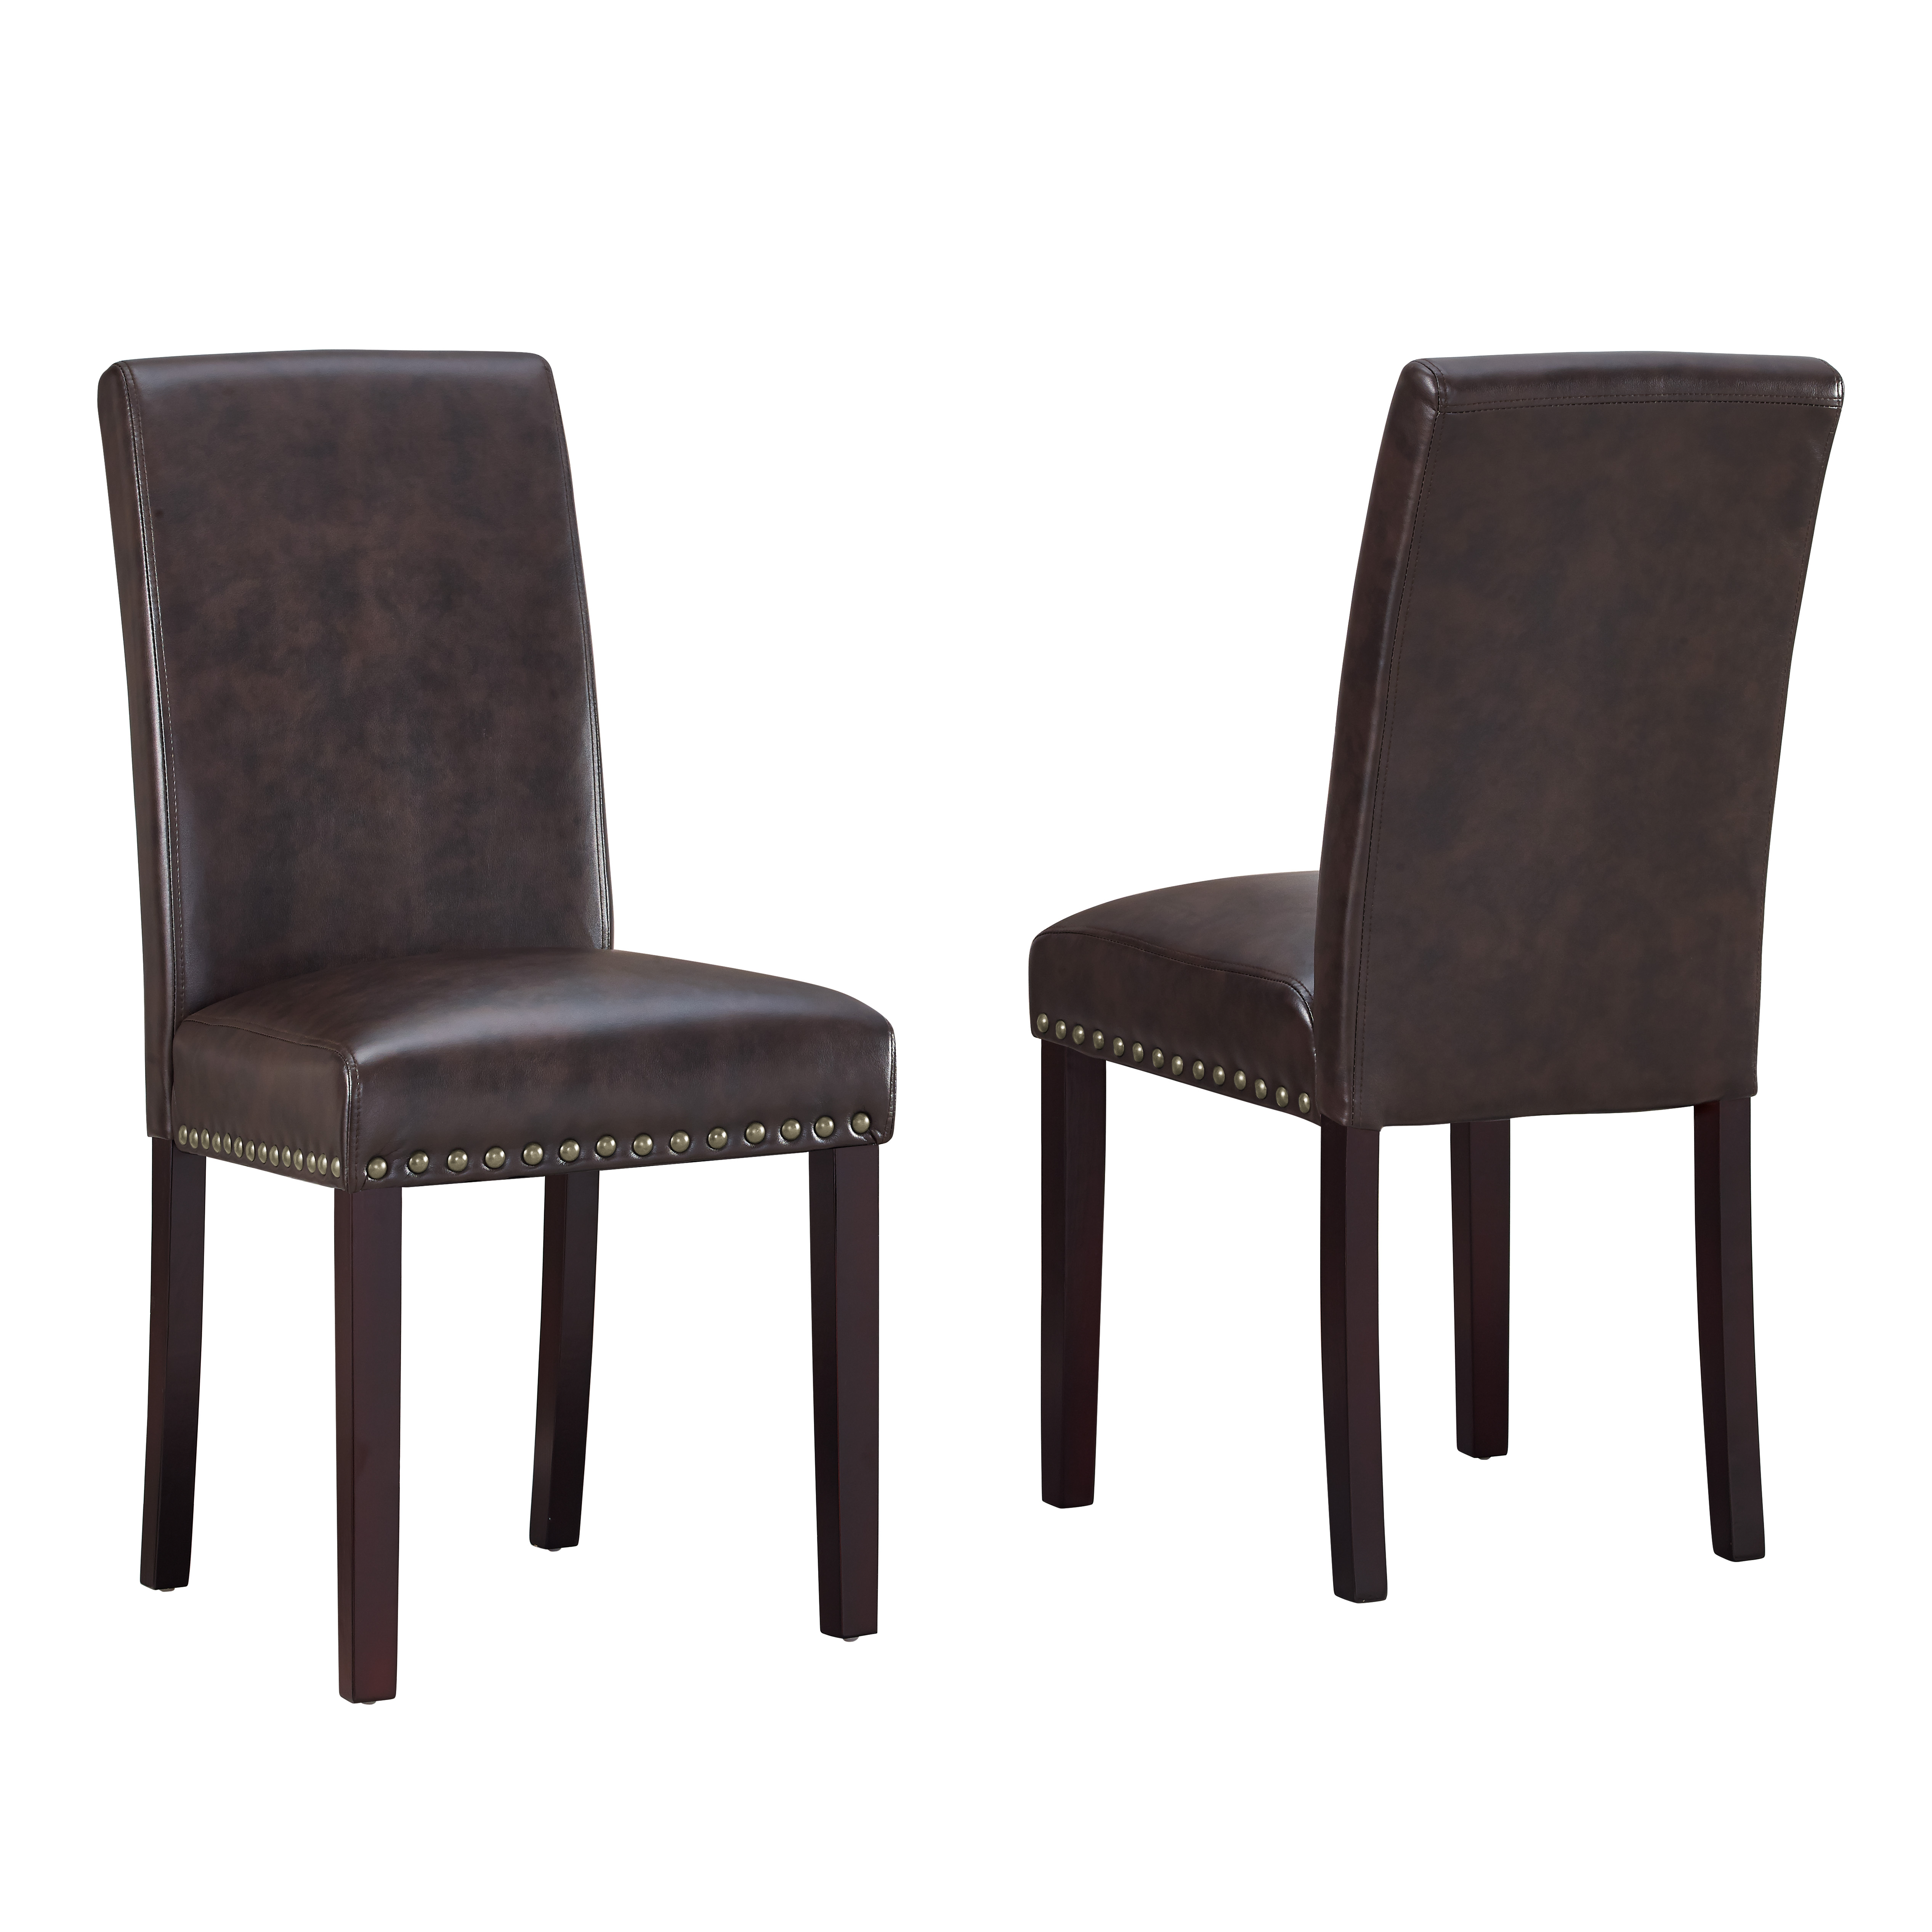 DHI Nice Nail Head Faux Leather Dining Chair, 2 Pack, Multiple Colors